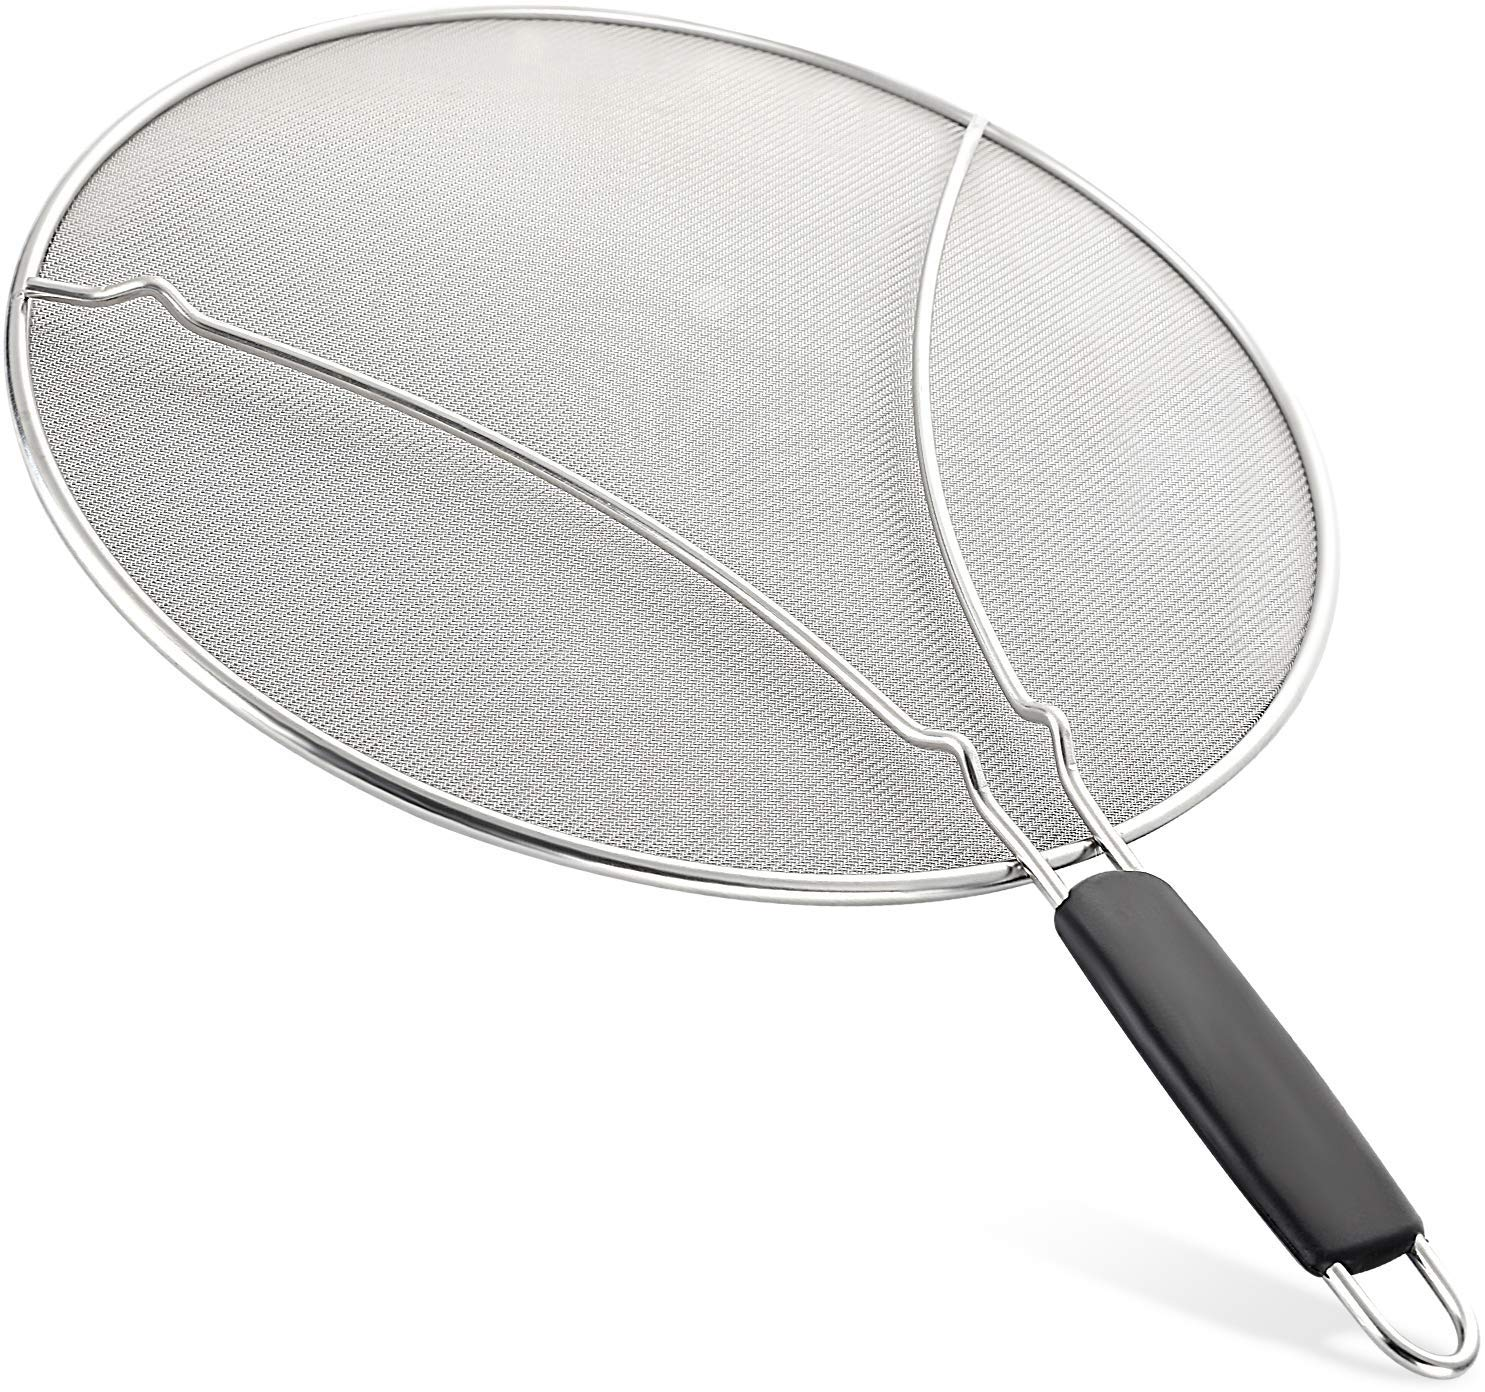 Splatter Screen for Frying Pan - Large 13'' Stainless Steel Grease Guard Shield and Catcher - Stops Almost 100% of Hot Oil Splash - Keeps Stove and Pans Clean by AWZSDF